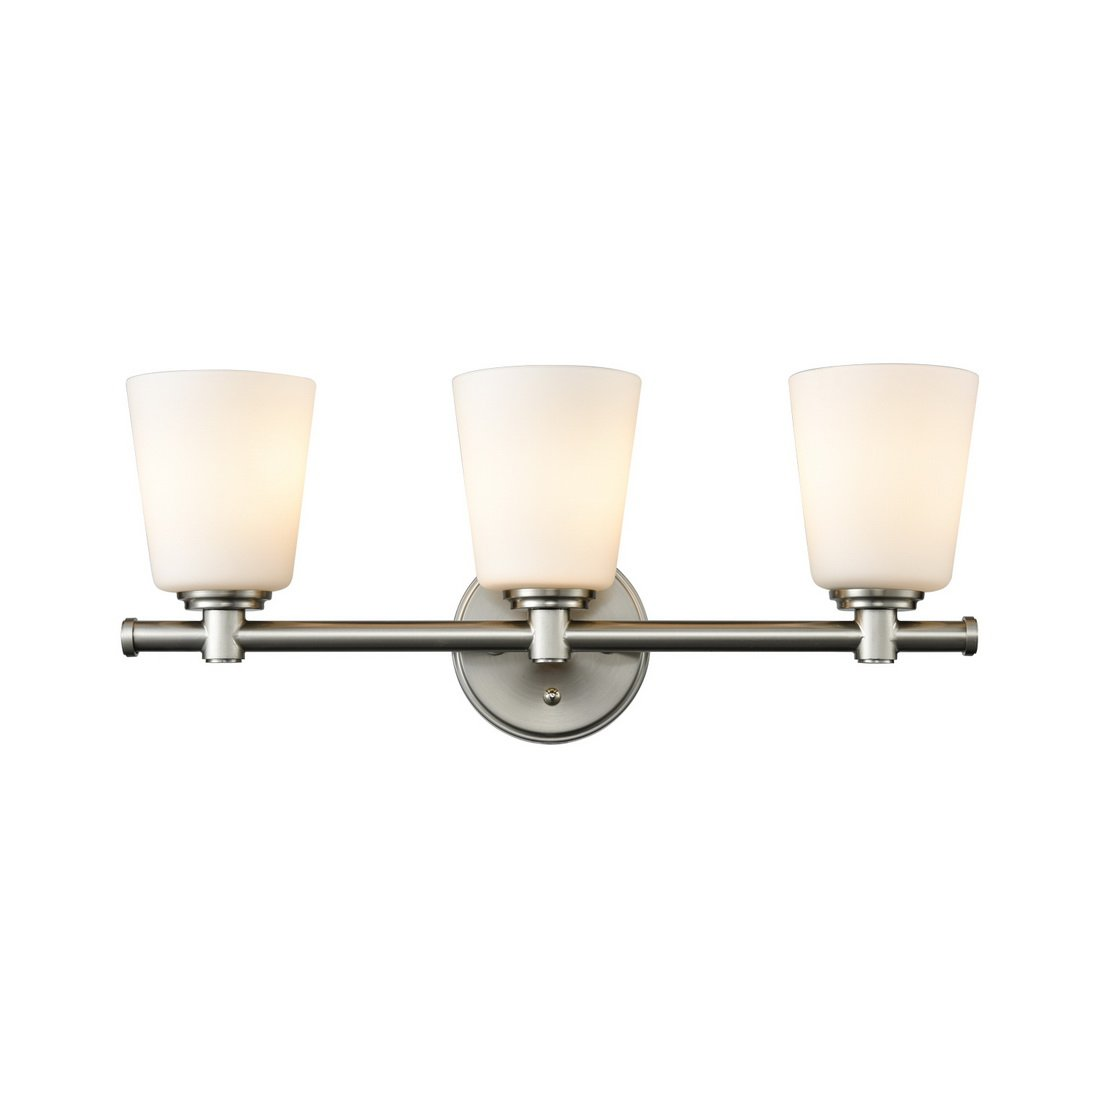 AXILAND Vanity Lighting Wall Sconce 3-Light Fixture with Opal Glass Shade Brushed Nickel